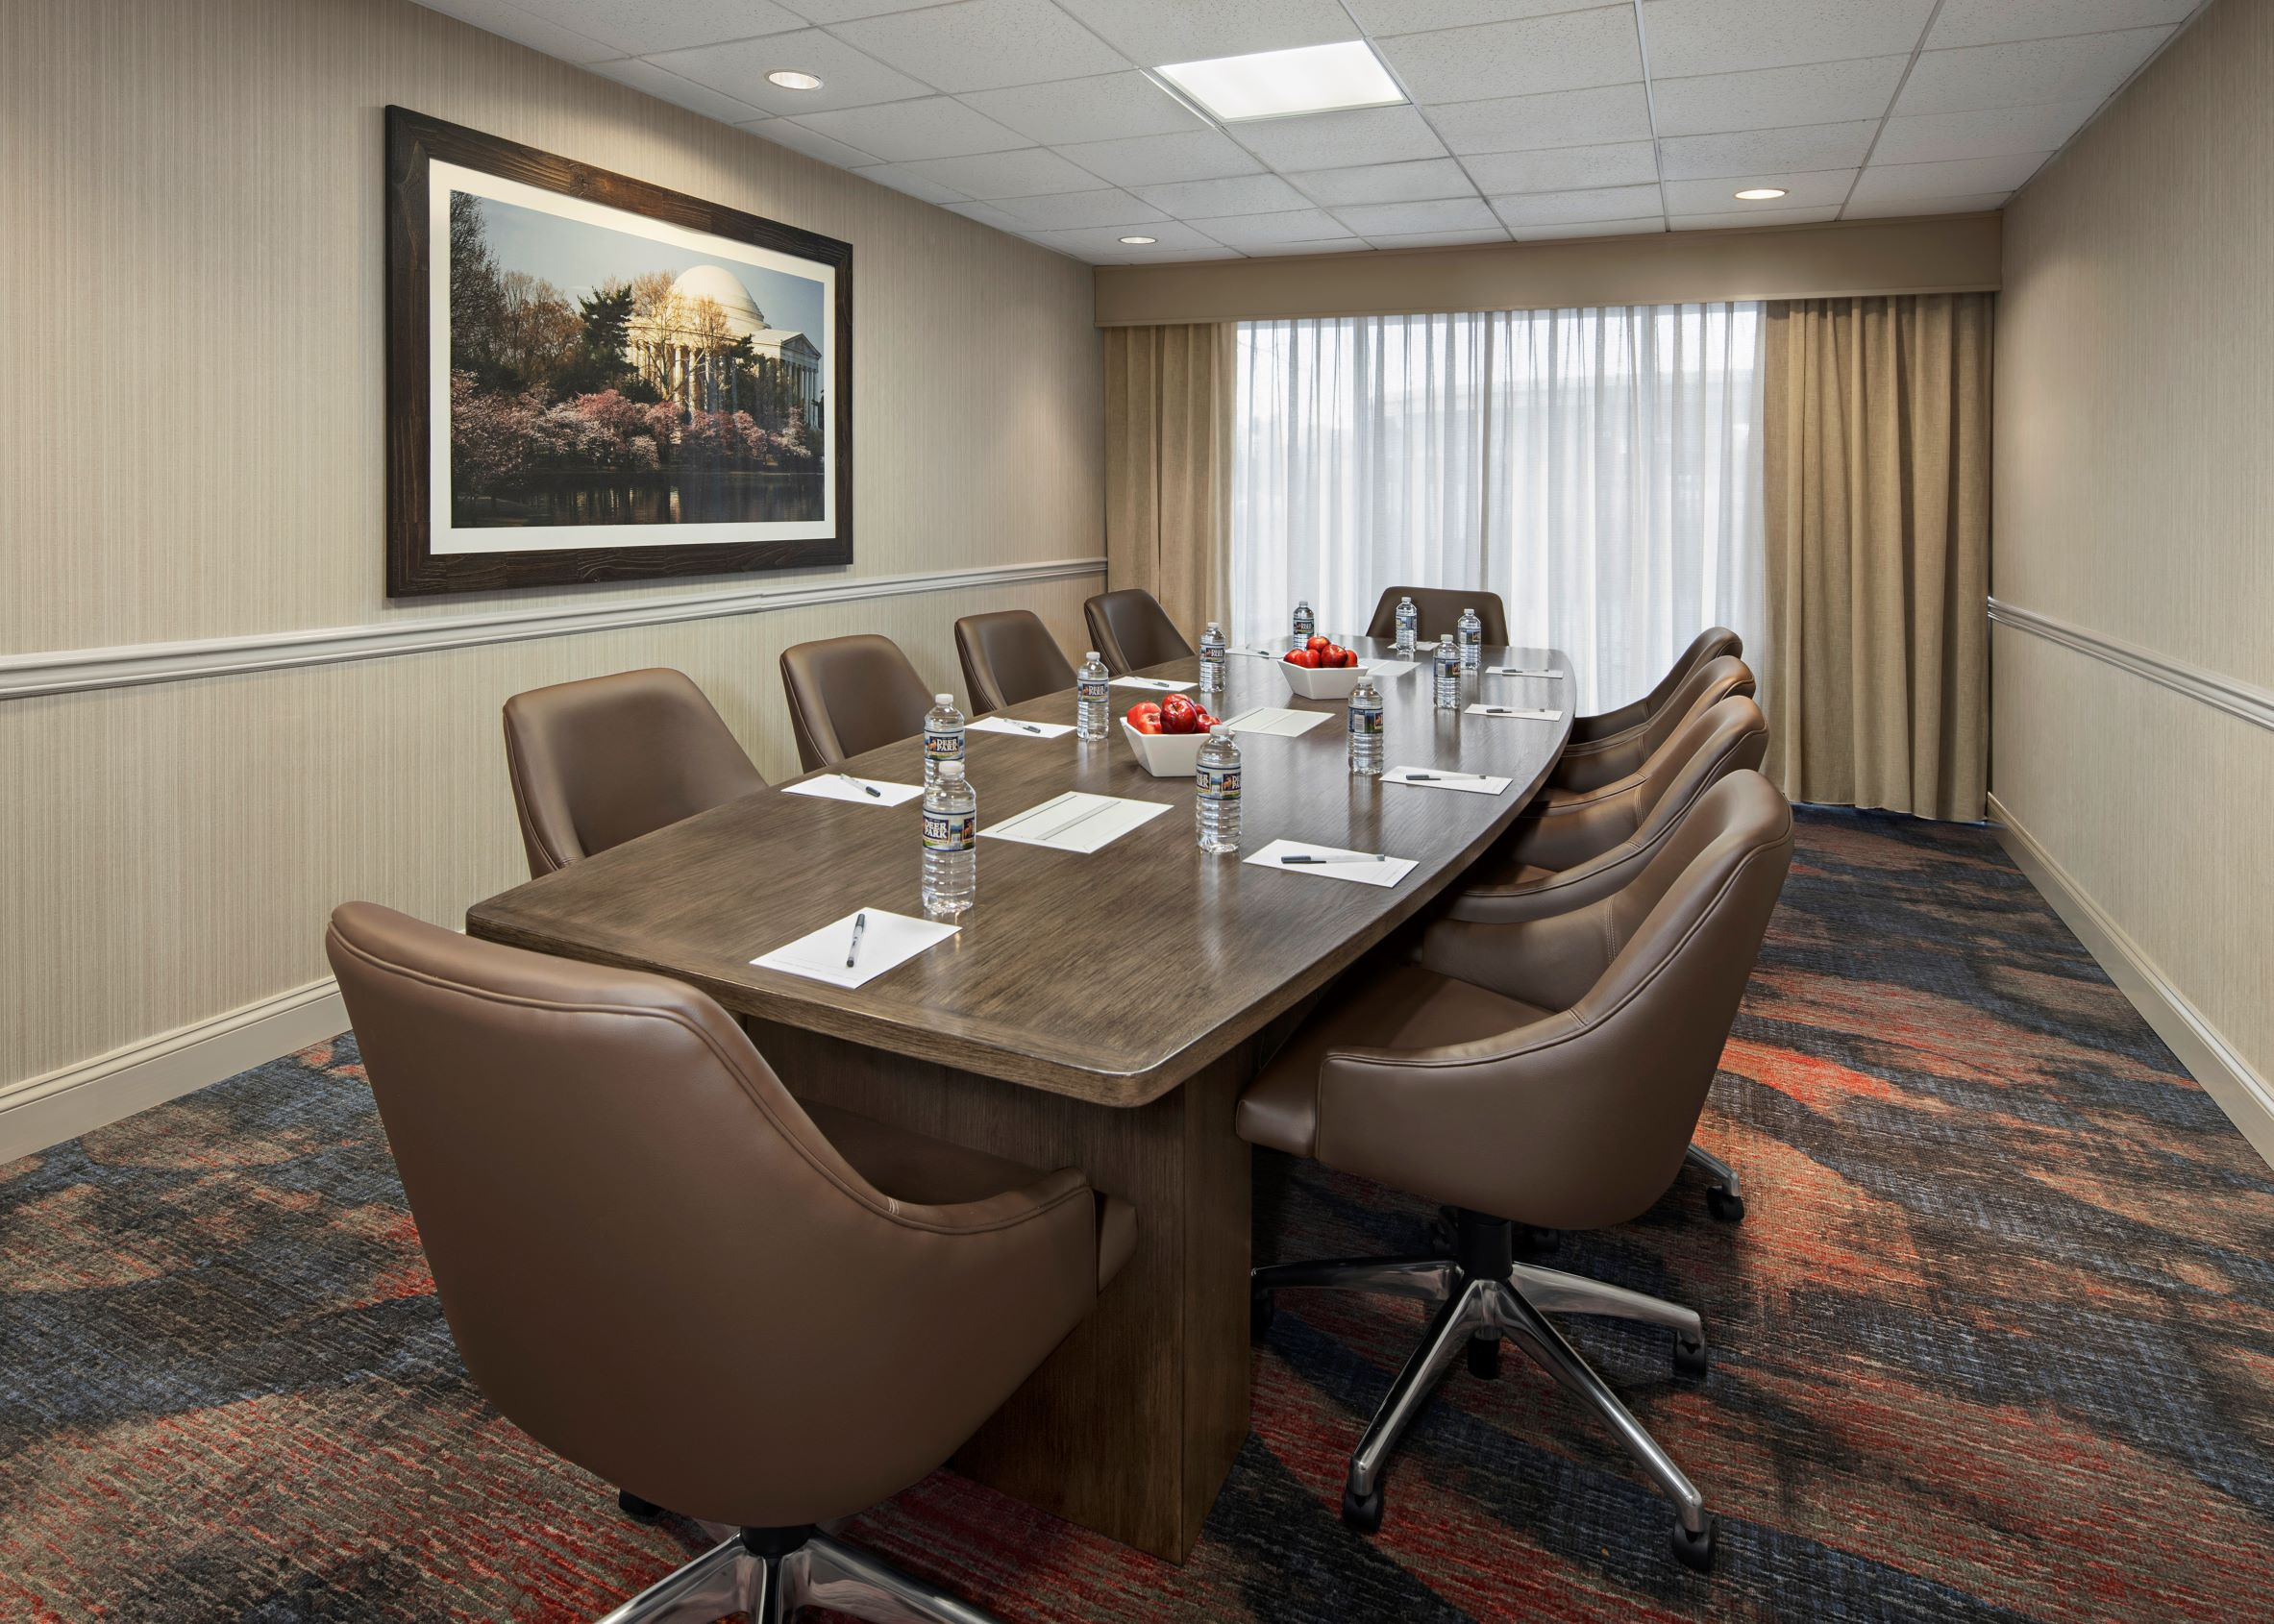 https://www.hotelsbyday.com/_data/default-hotel_image/4/21695/wasaxhx-mt-vernon-boardroom-resized.jpg